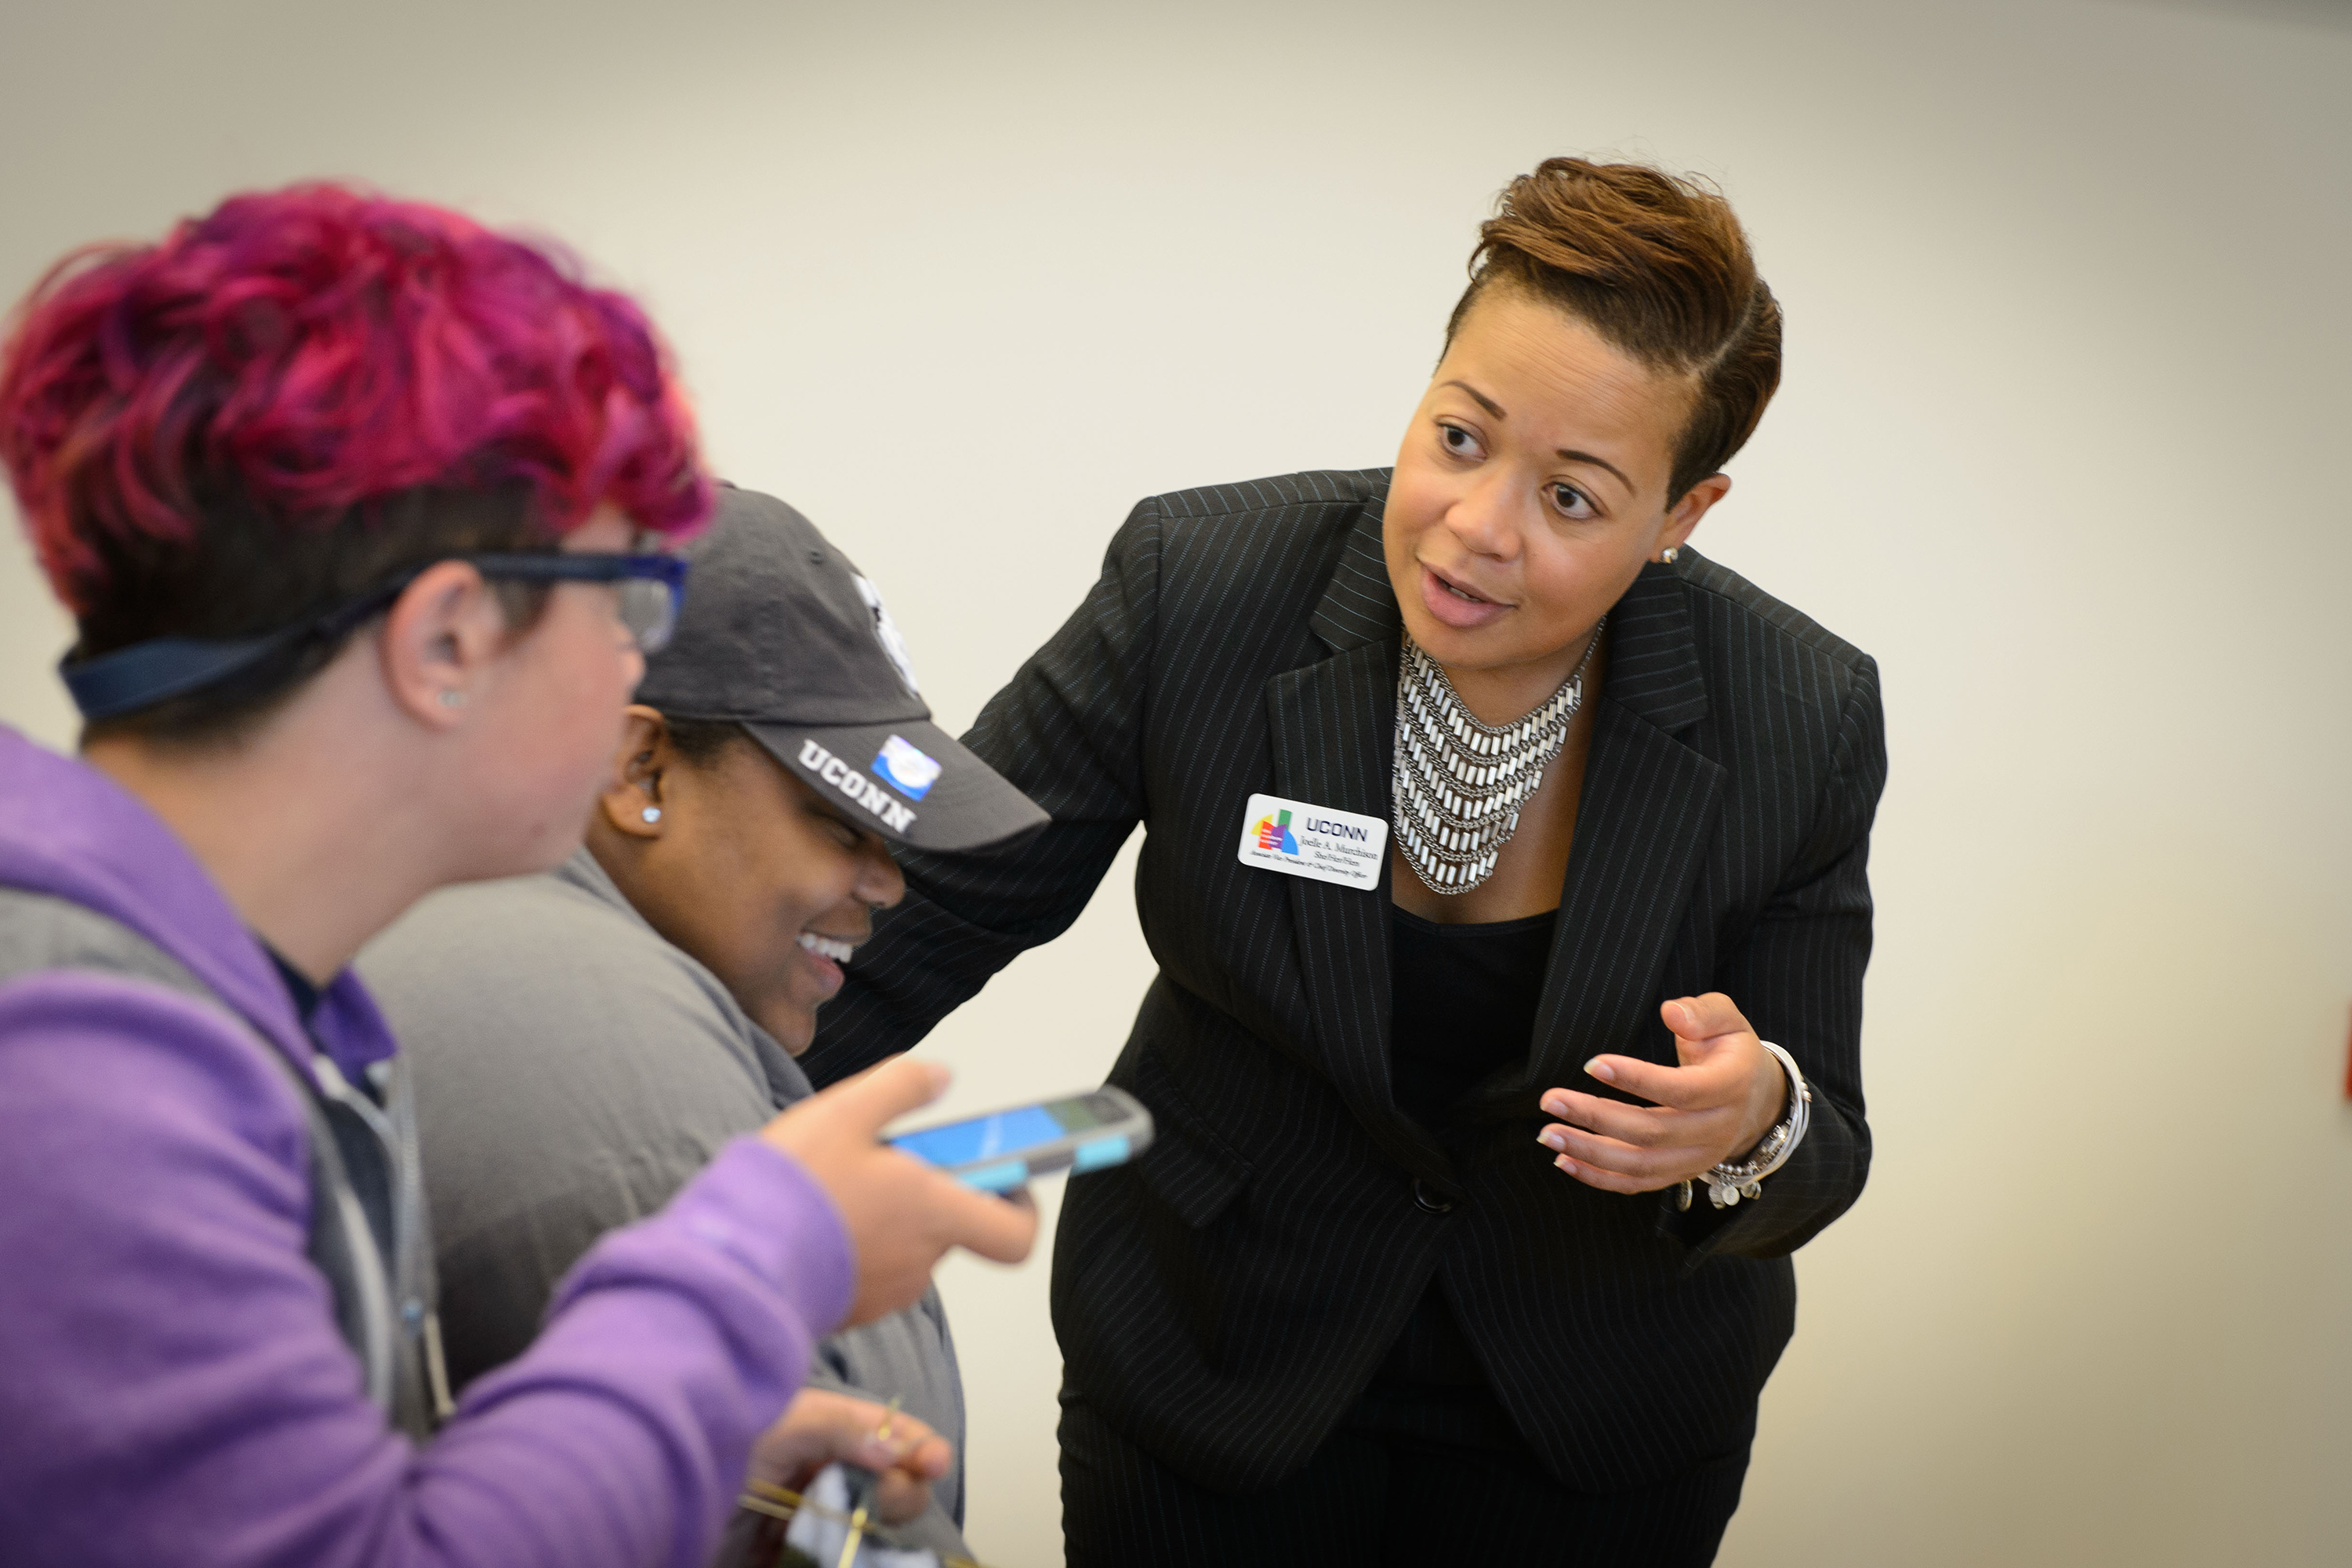 Associate vice president and chief diversity officer Joelle Murchison speaks with students before a forum on the recent violence seen in Orlando held at the Student Union Ballroom on Oct. 4, 2016. (Peter Morenus/UConn Photo)